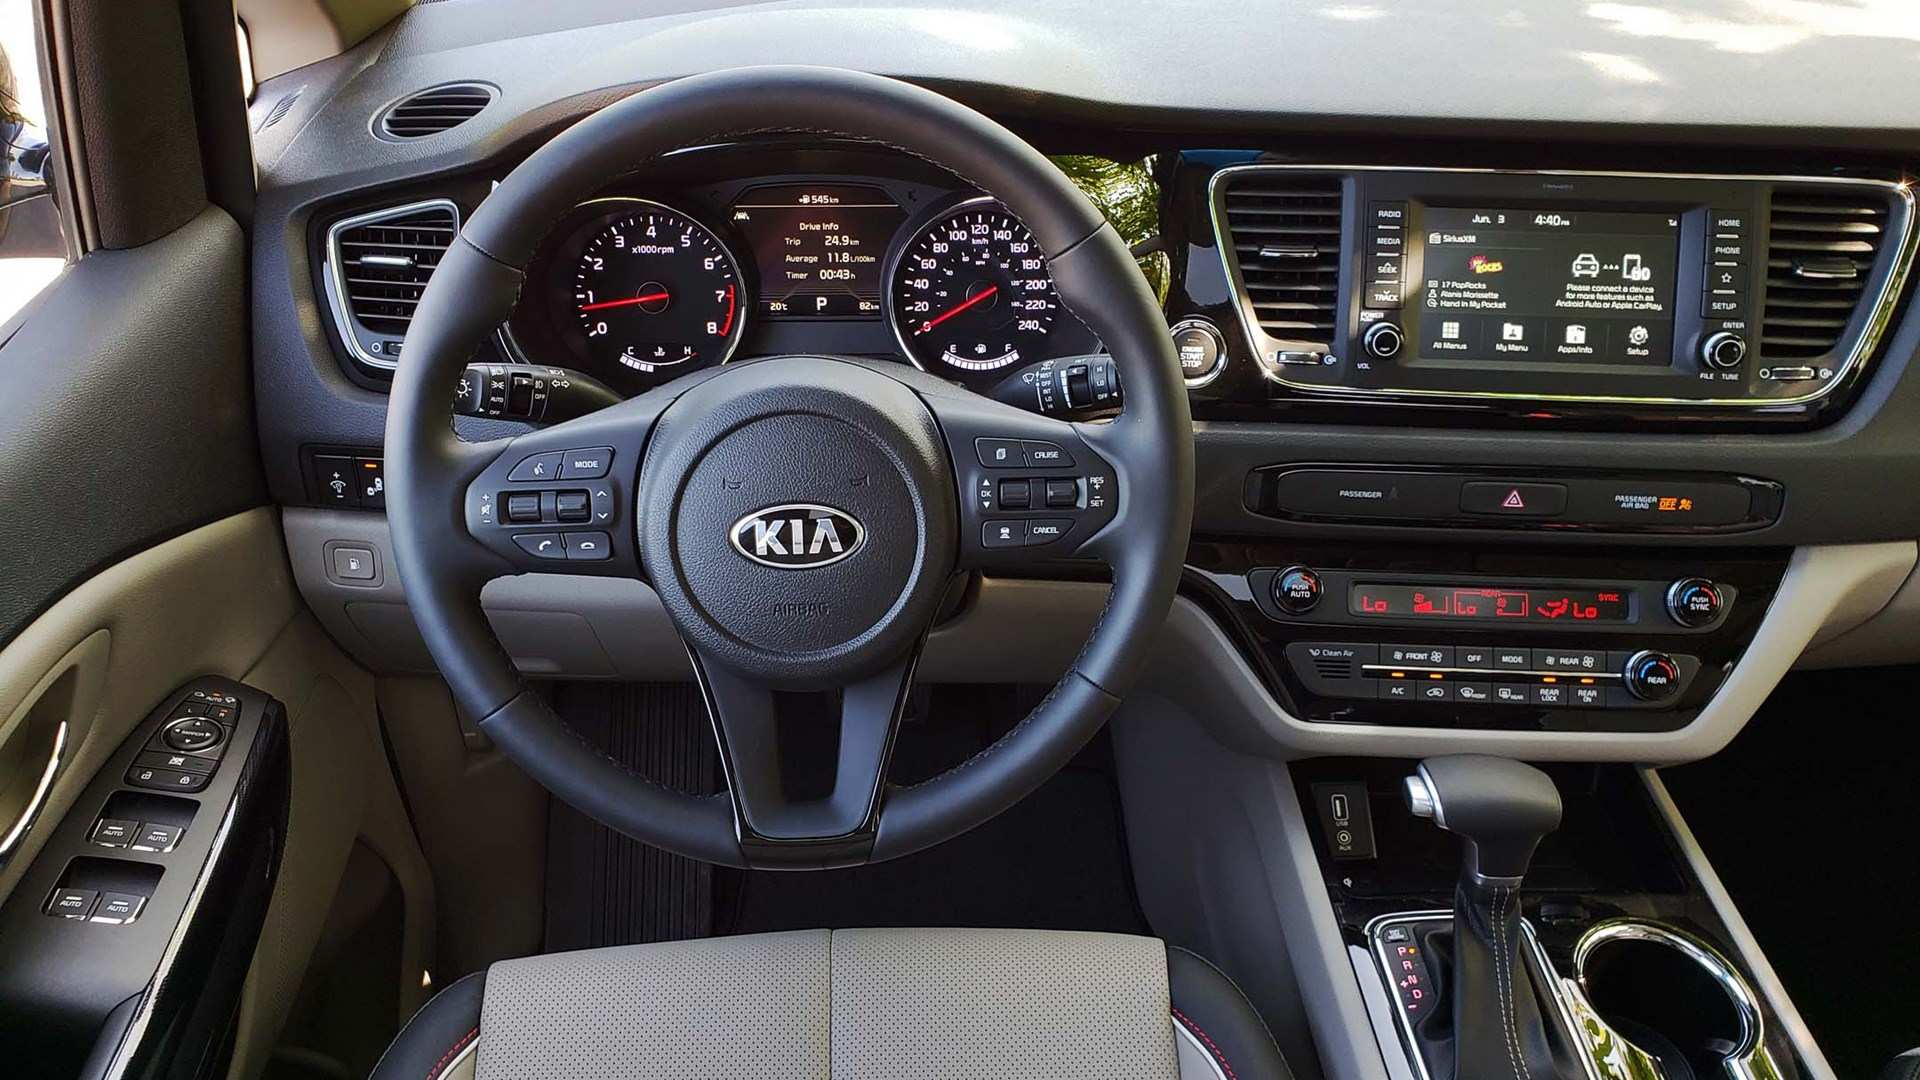 67 All New 2020 Kia Sedona Release Date Spy Shoot